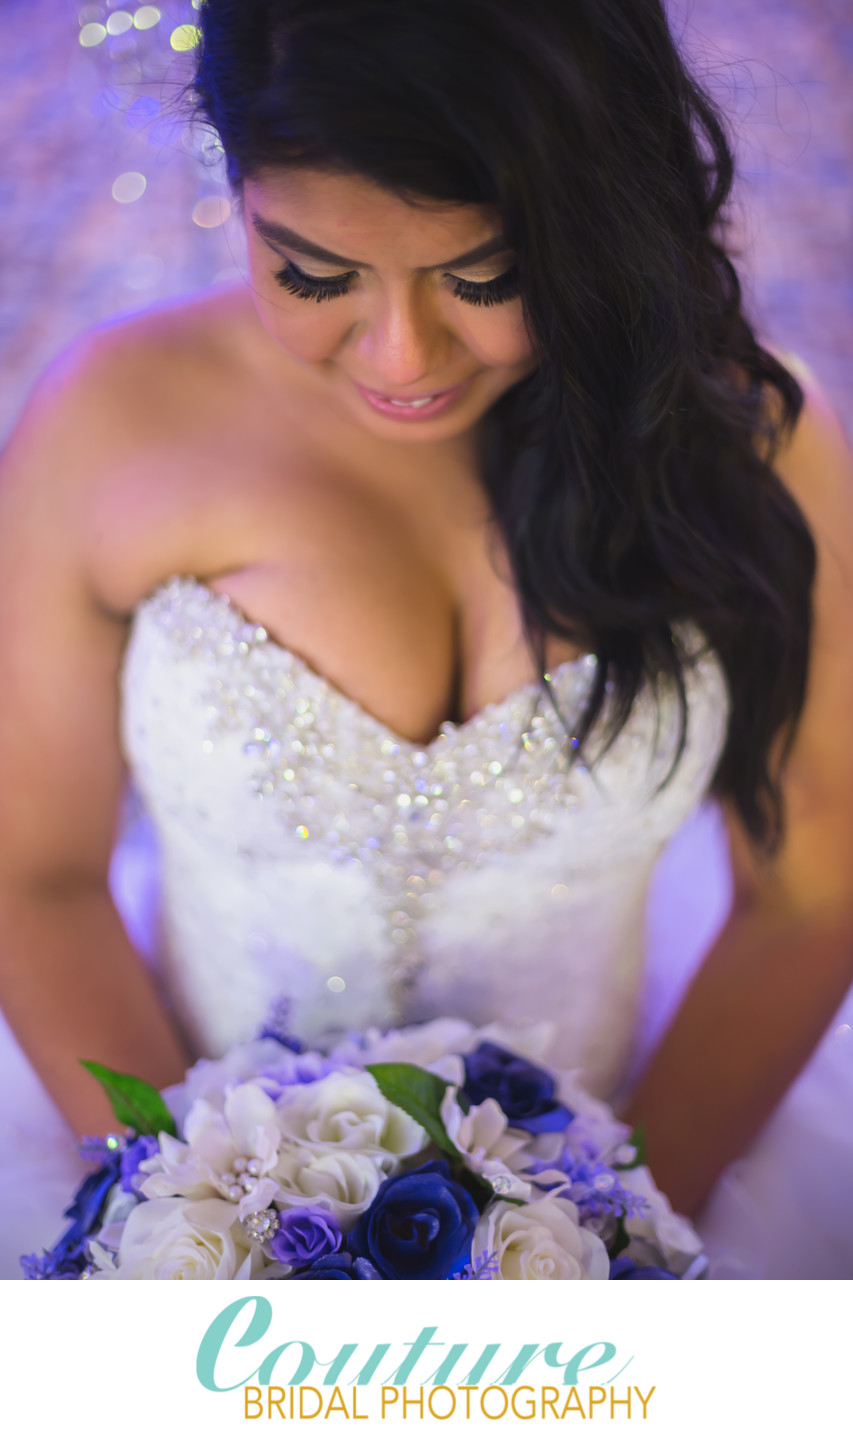 WEDDING PHOTOGRAPHER | FORT LAUDERDALE BEACH WEDDINGS